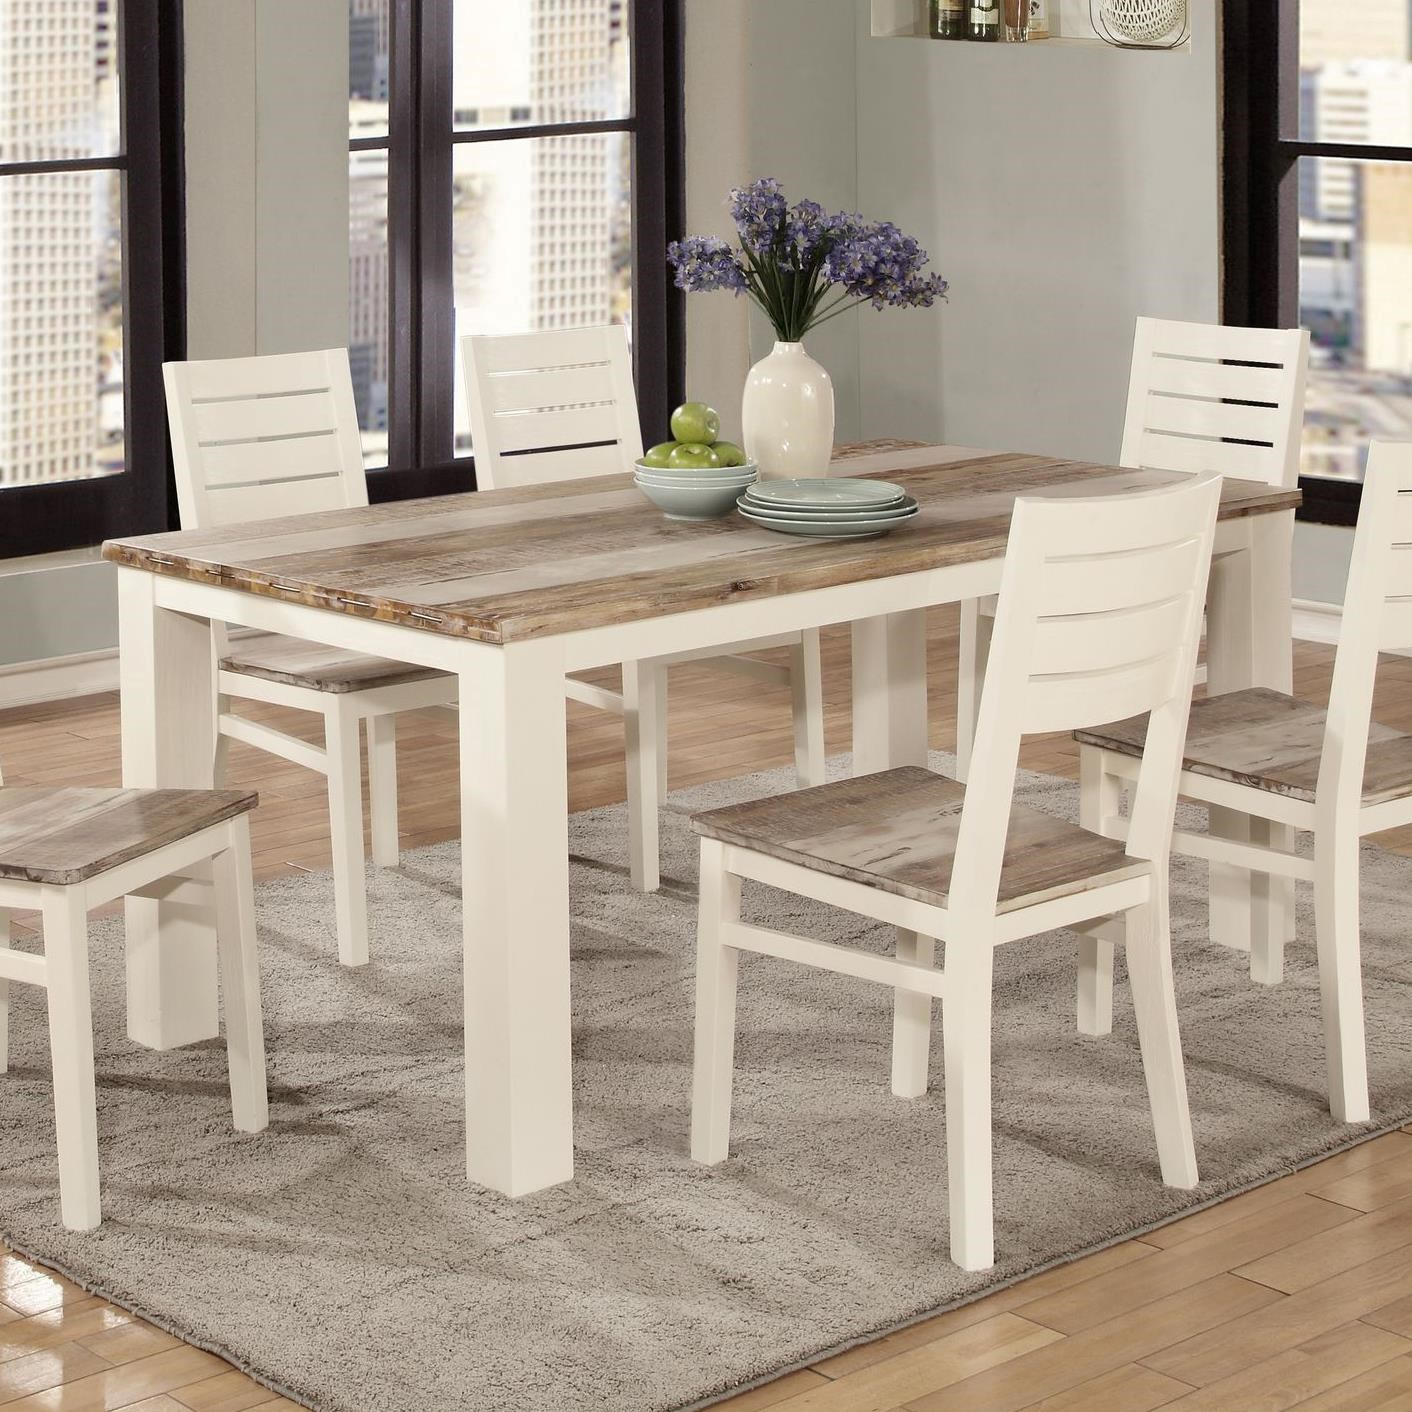 Lifestyle C347 Two Tone Wood Finish Rectangle Dining Table ...